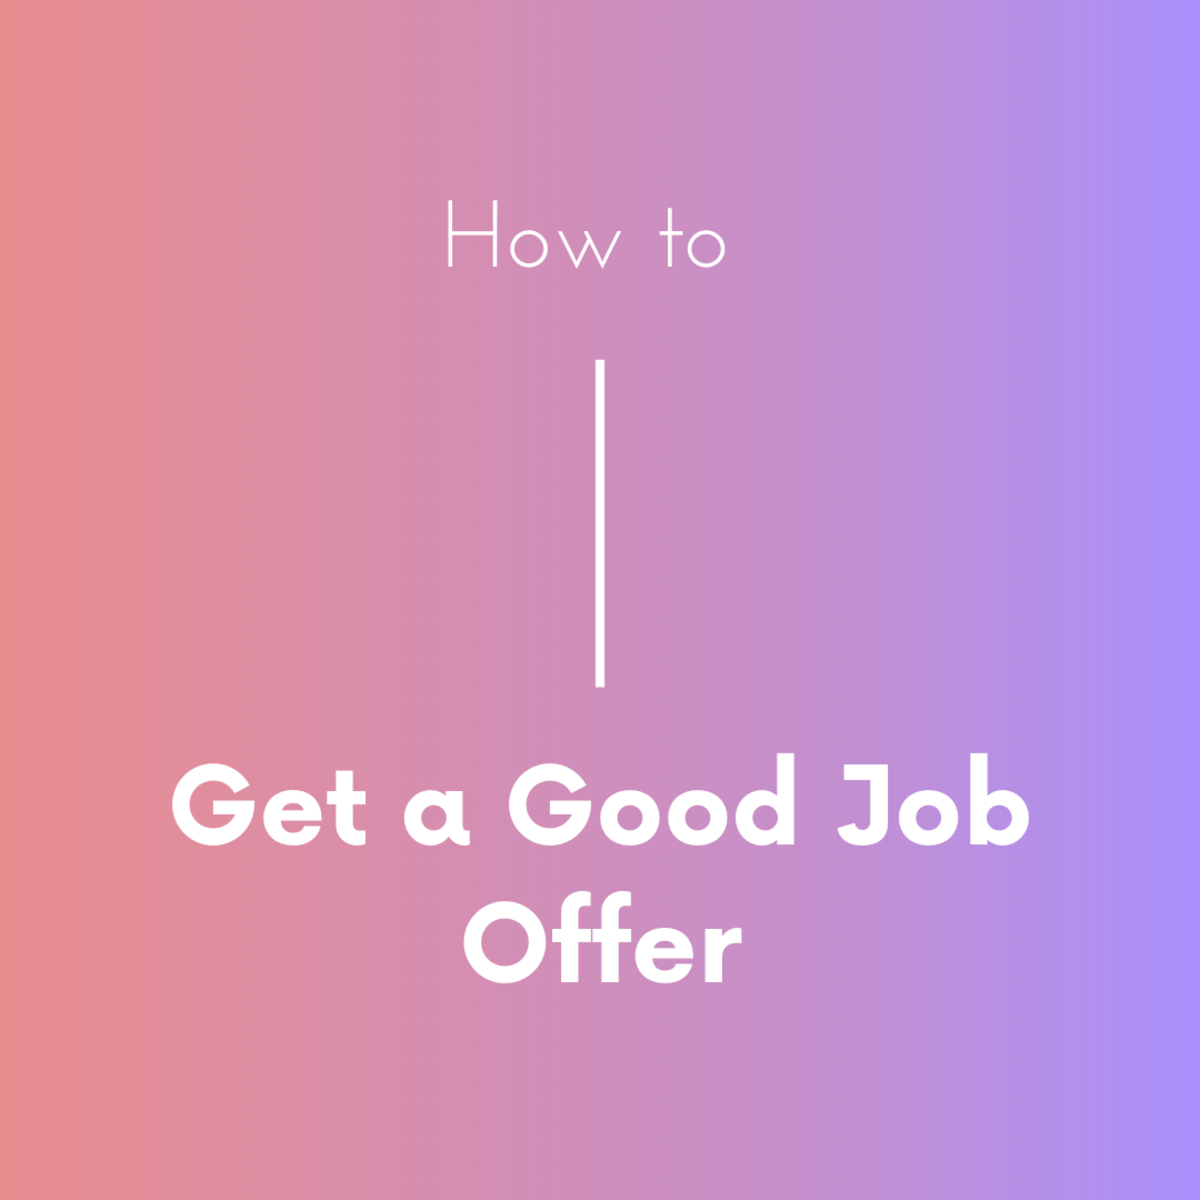 Proven Tips to Get a Good Job Offer